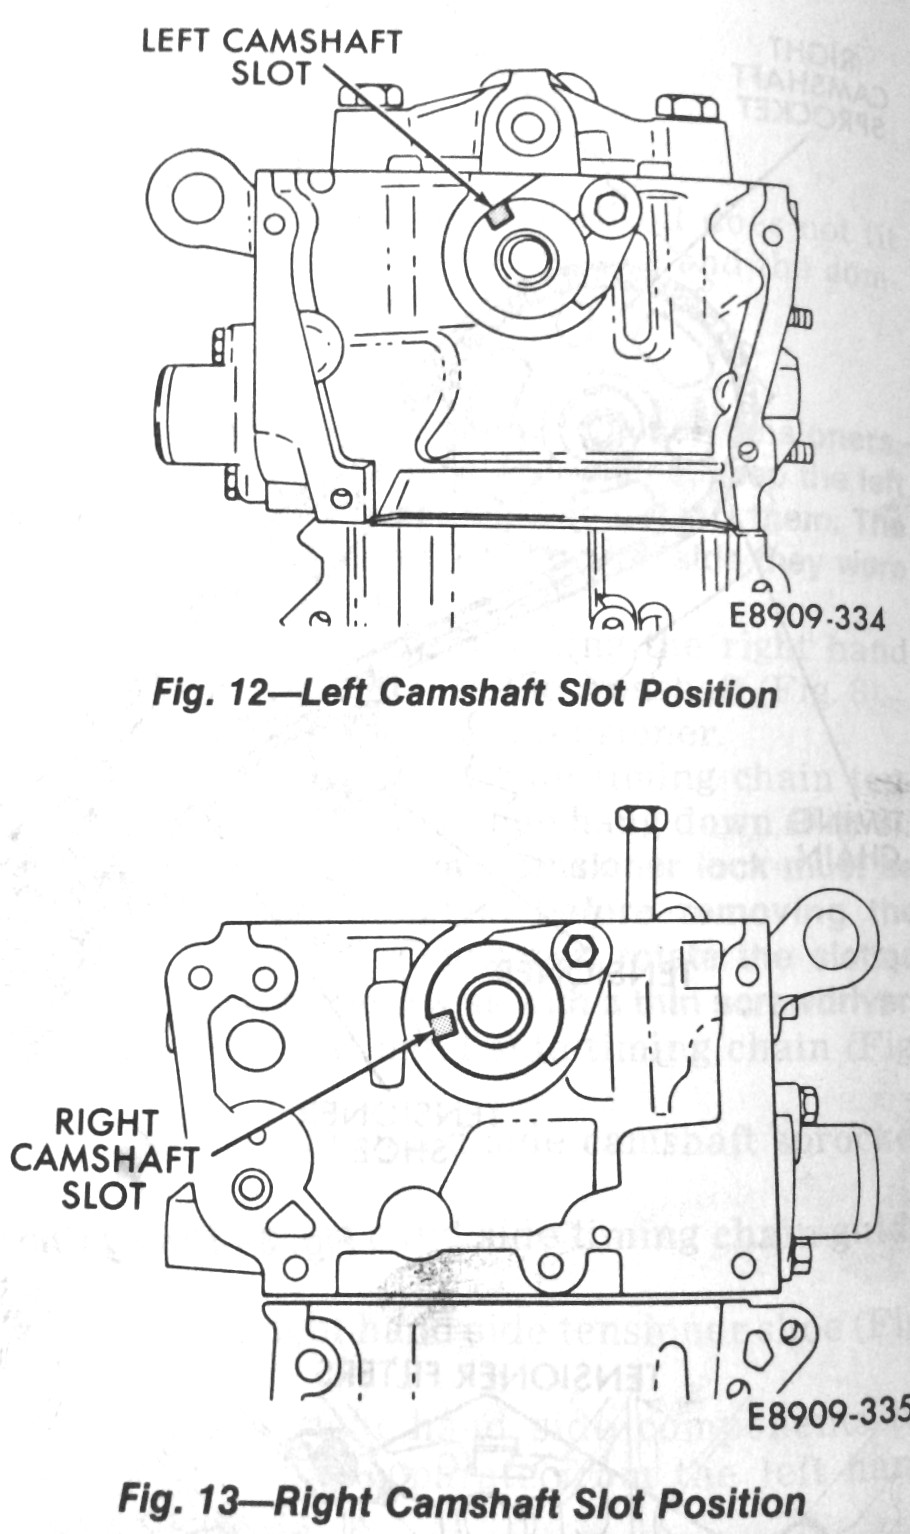 """Camshaft slot alignements for installation, from the Premier/Monaco Manual. Remember that """"left"""" means """"passenger side"""" and """"right"""" means """"driver's side""""."""